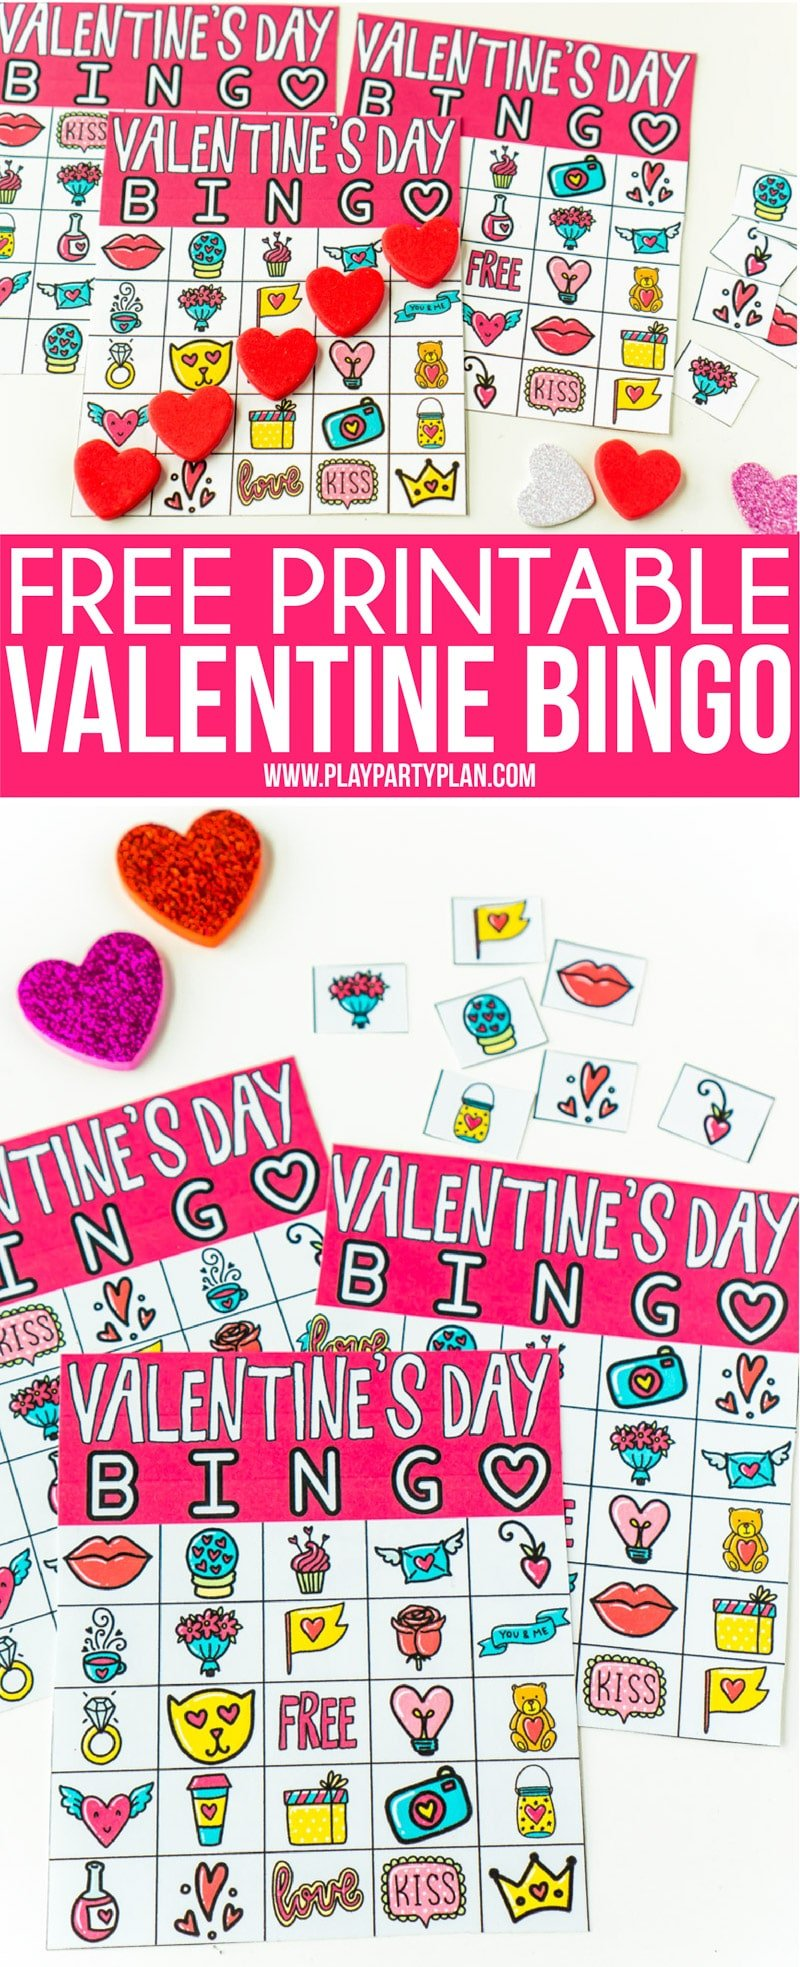 photo regarding Printable Valentine Bingo Cards titled No cost Printable Valentine Bingo Playing cards for All Ages - Perform